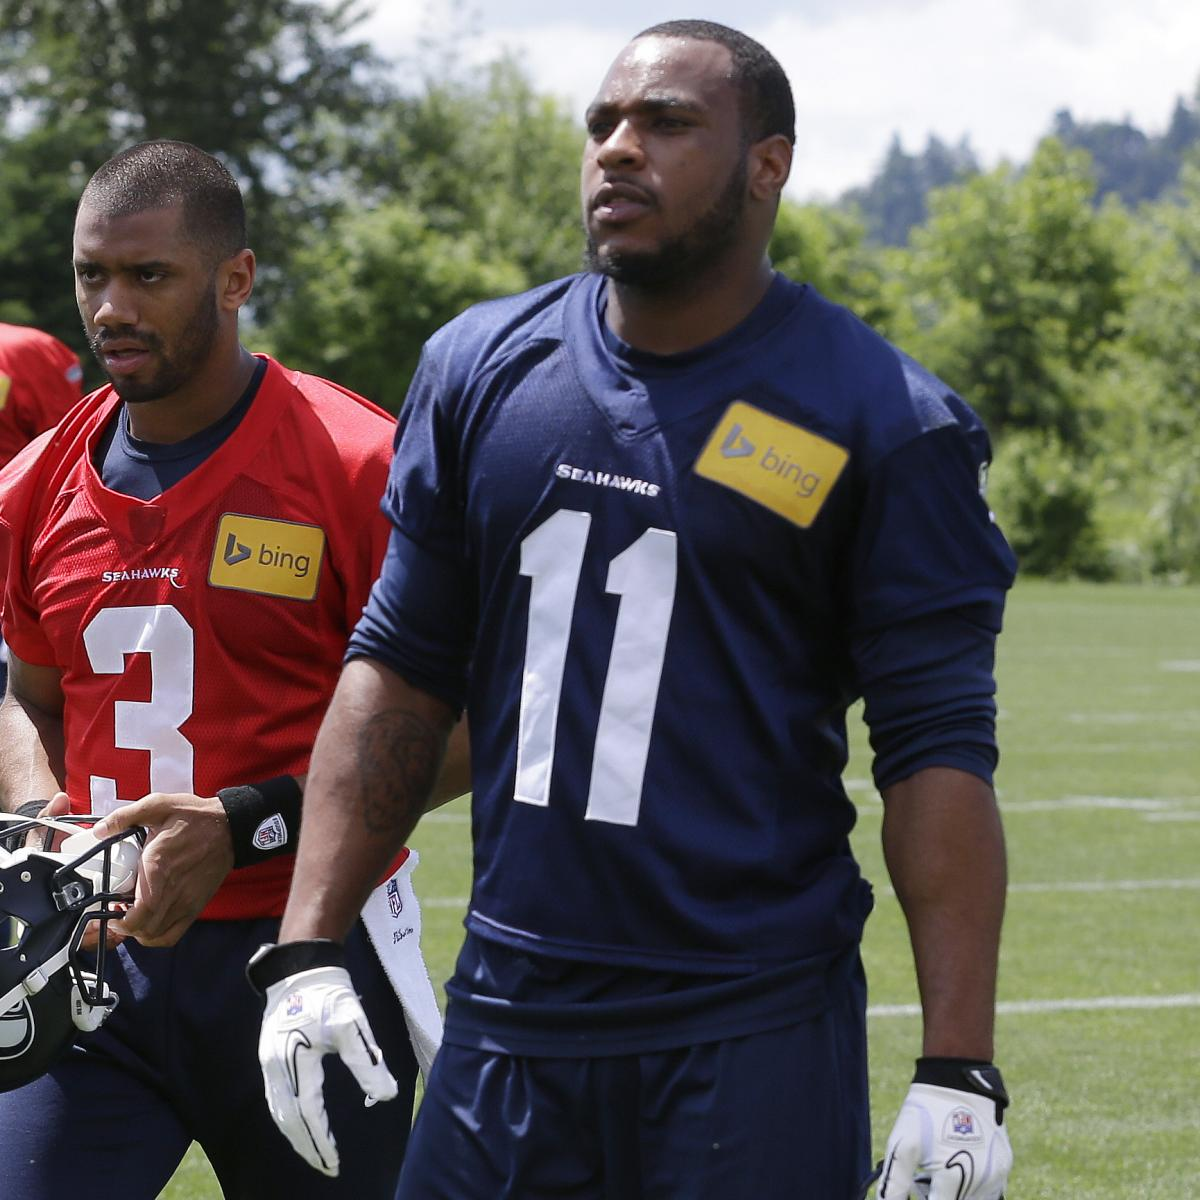 Percy Harvin Traded To Jets: Latest Details, Reaction And